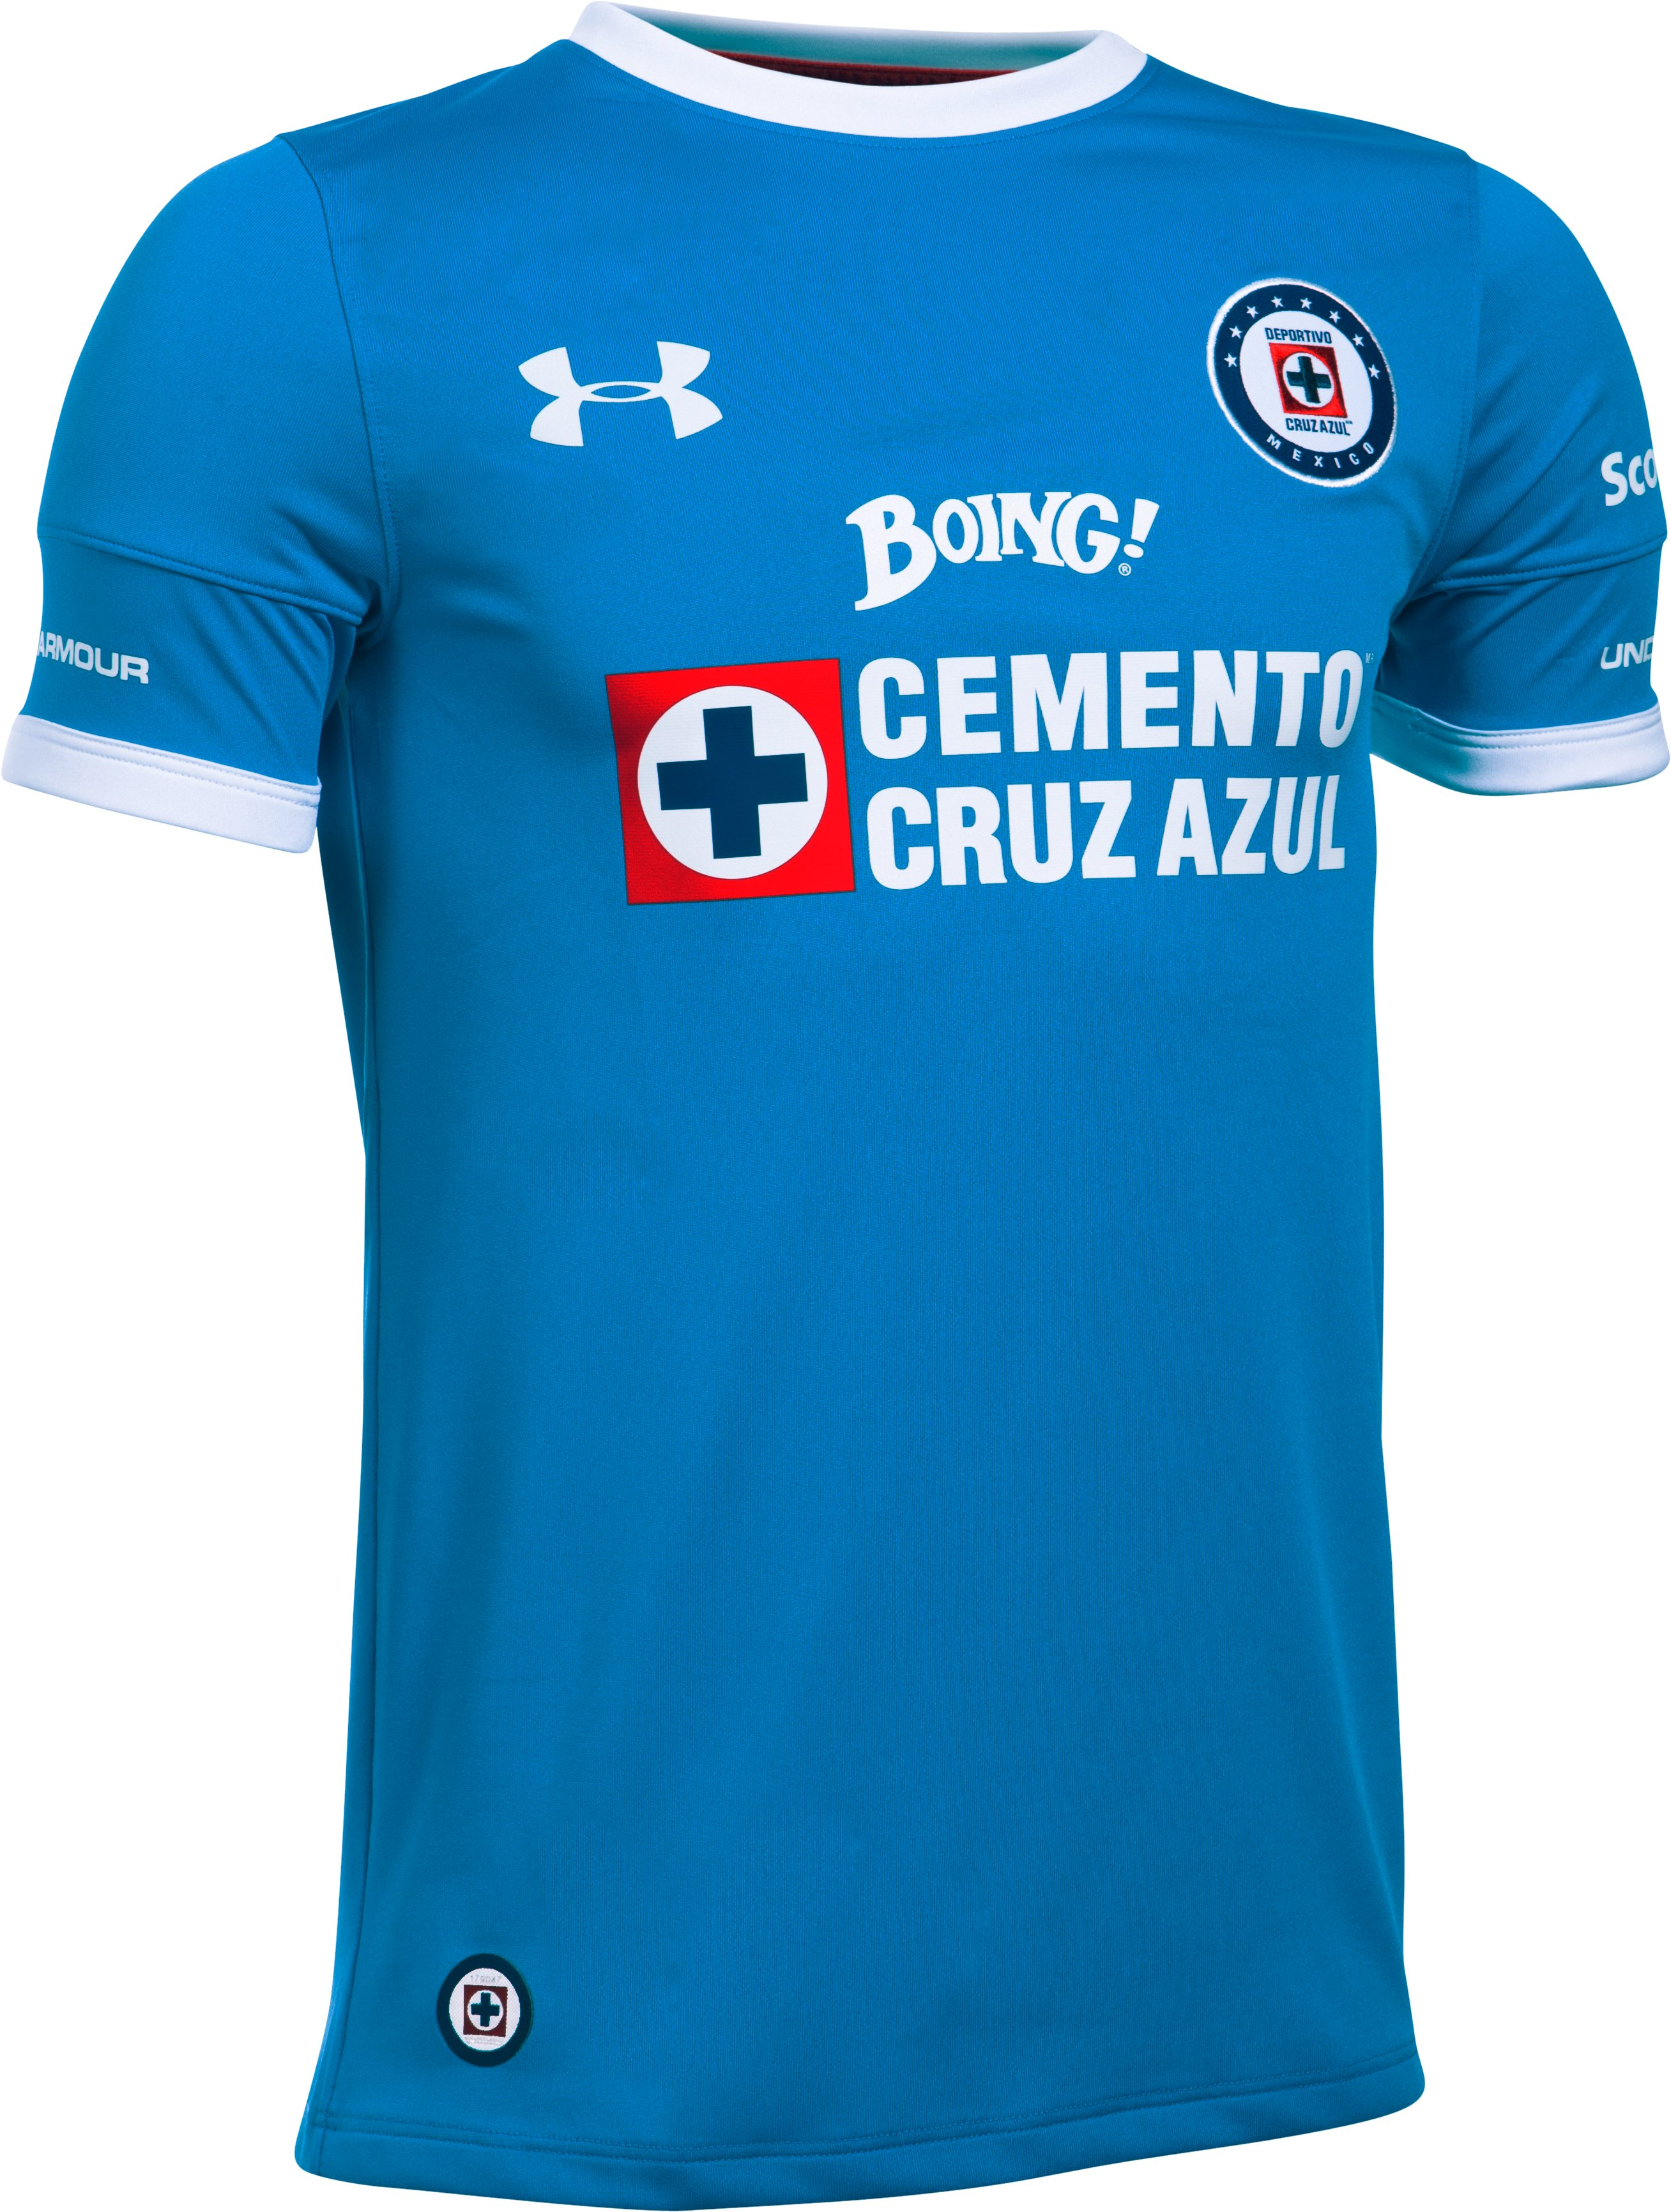 Kids' Cruz Azul 16/17 Home/Third Replica Jersey, Blue Taro,